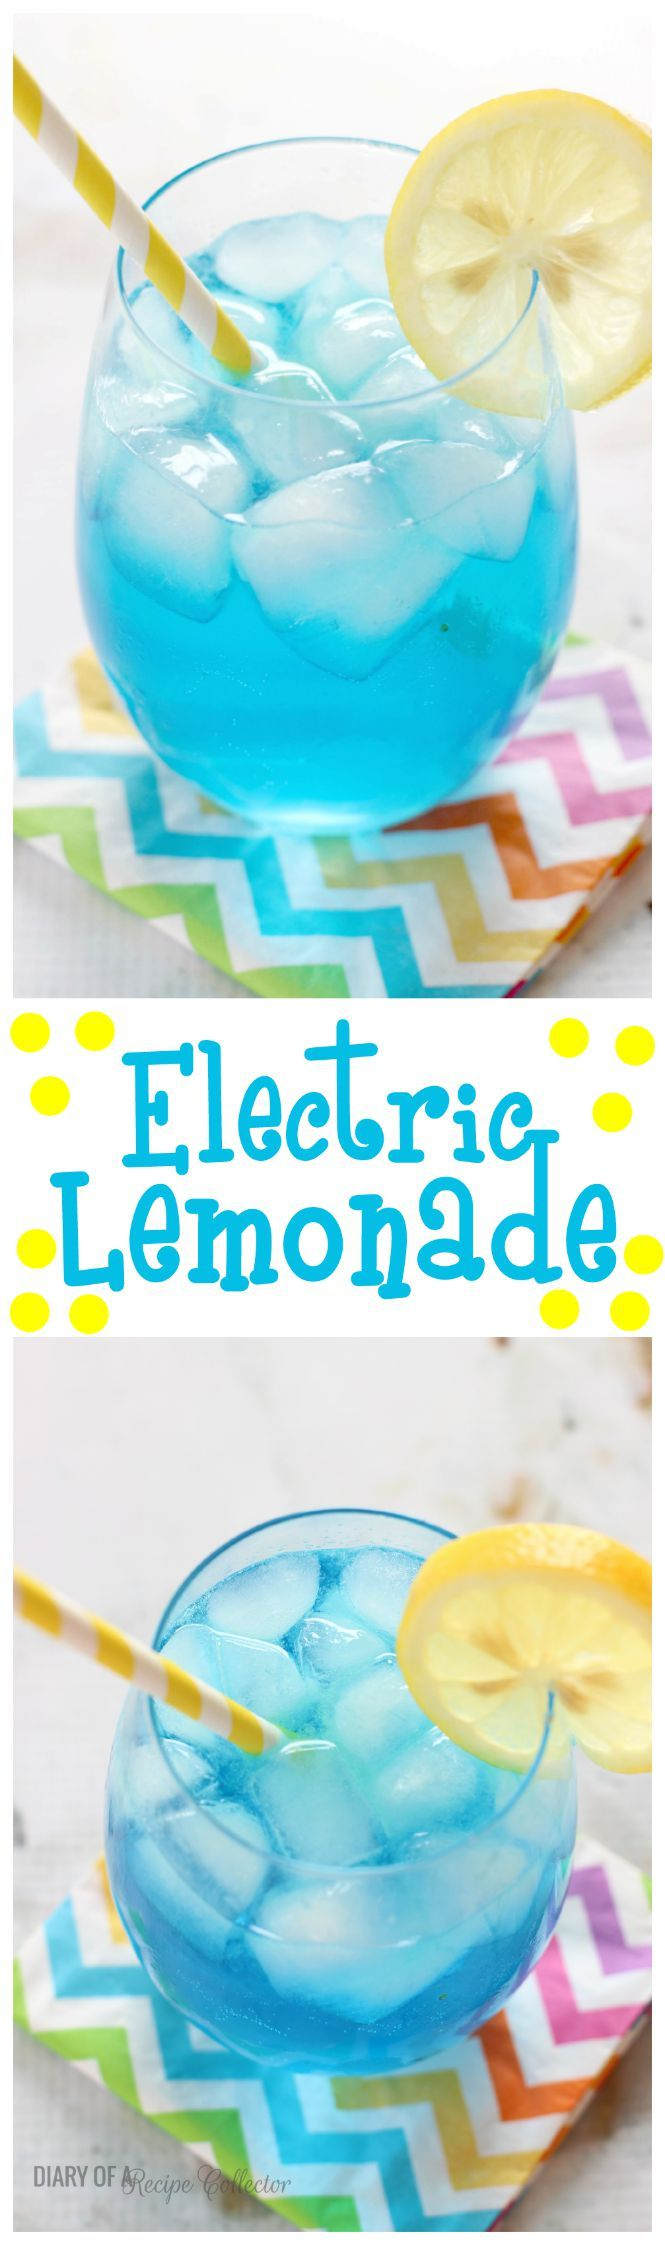 Electric Lemonade - Diary of A Recipe Collector